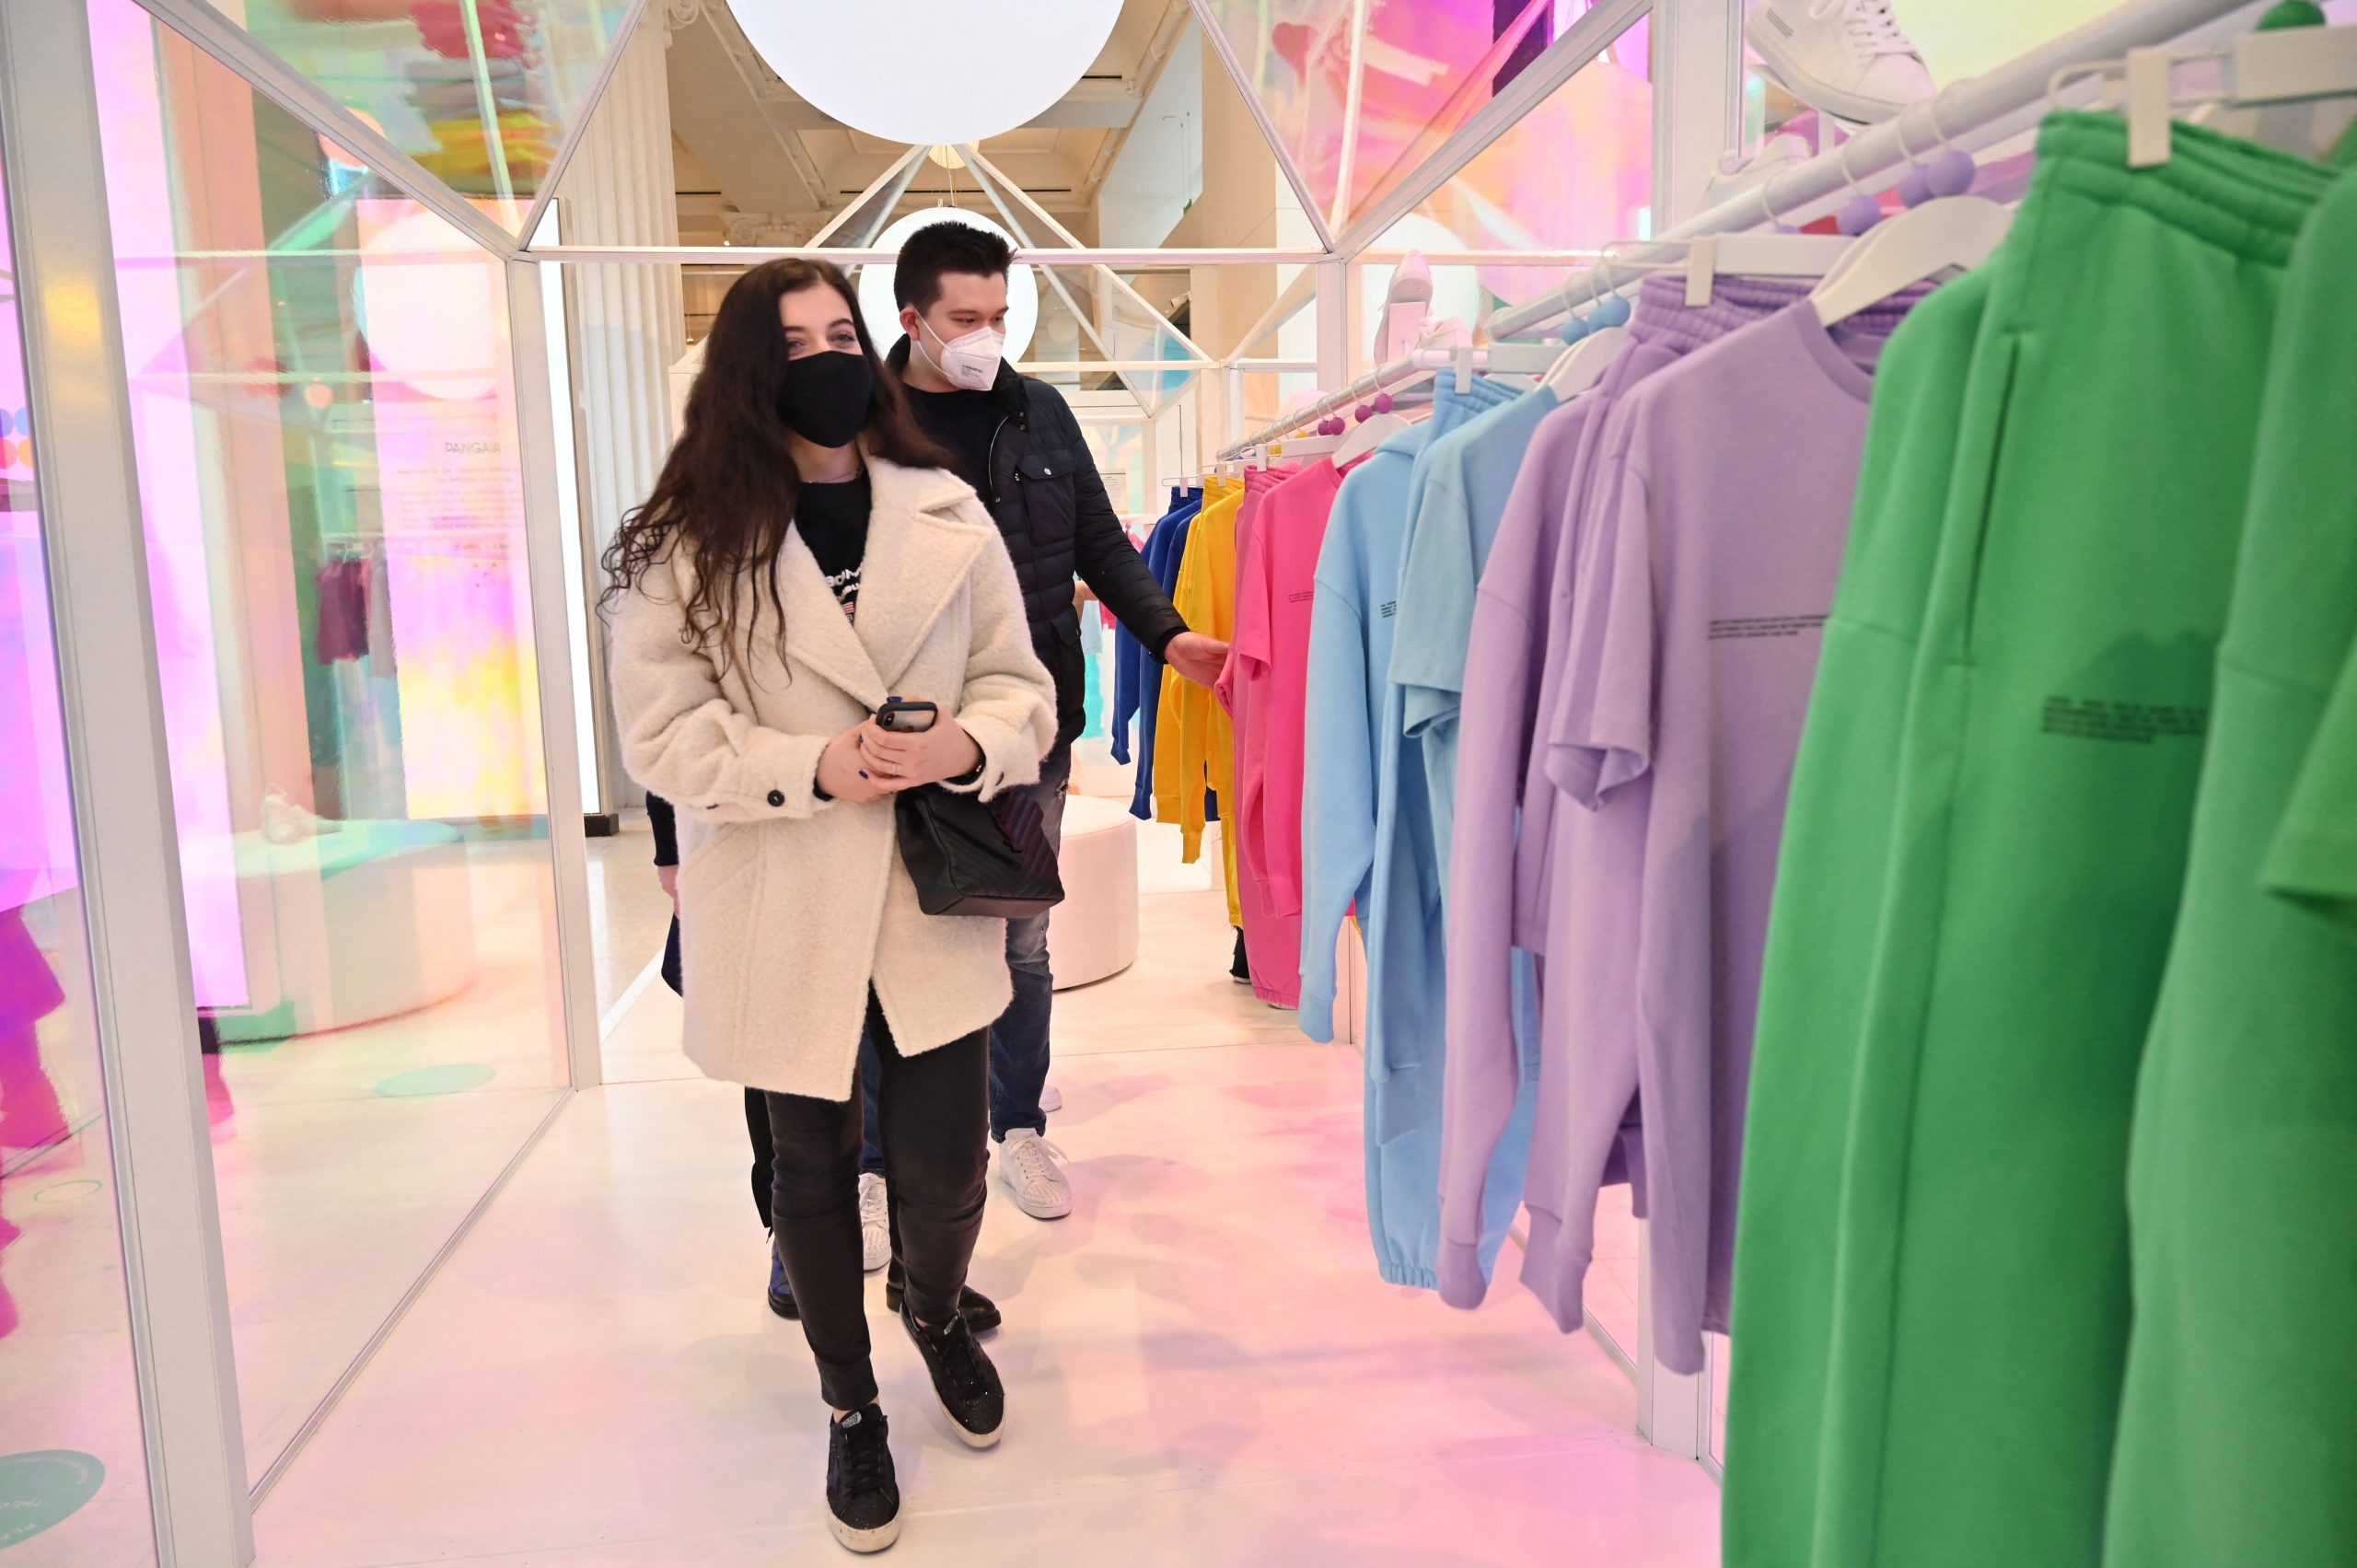 Experts see innovation and pop-up stores